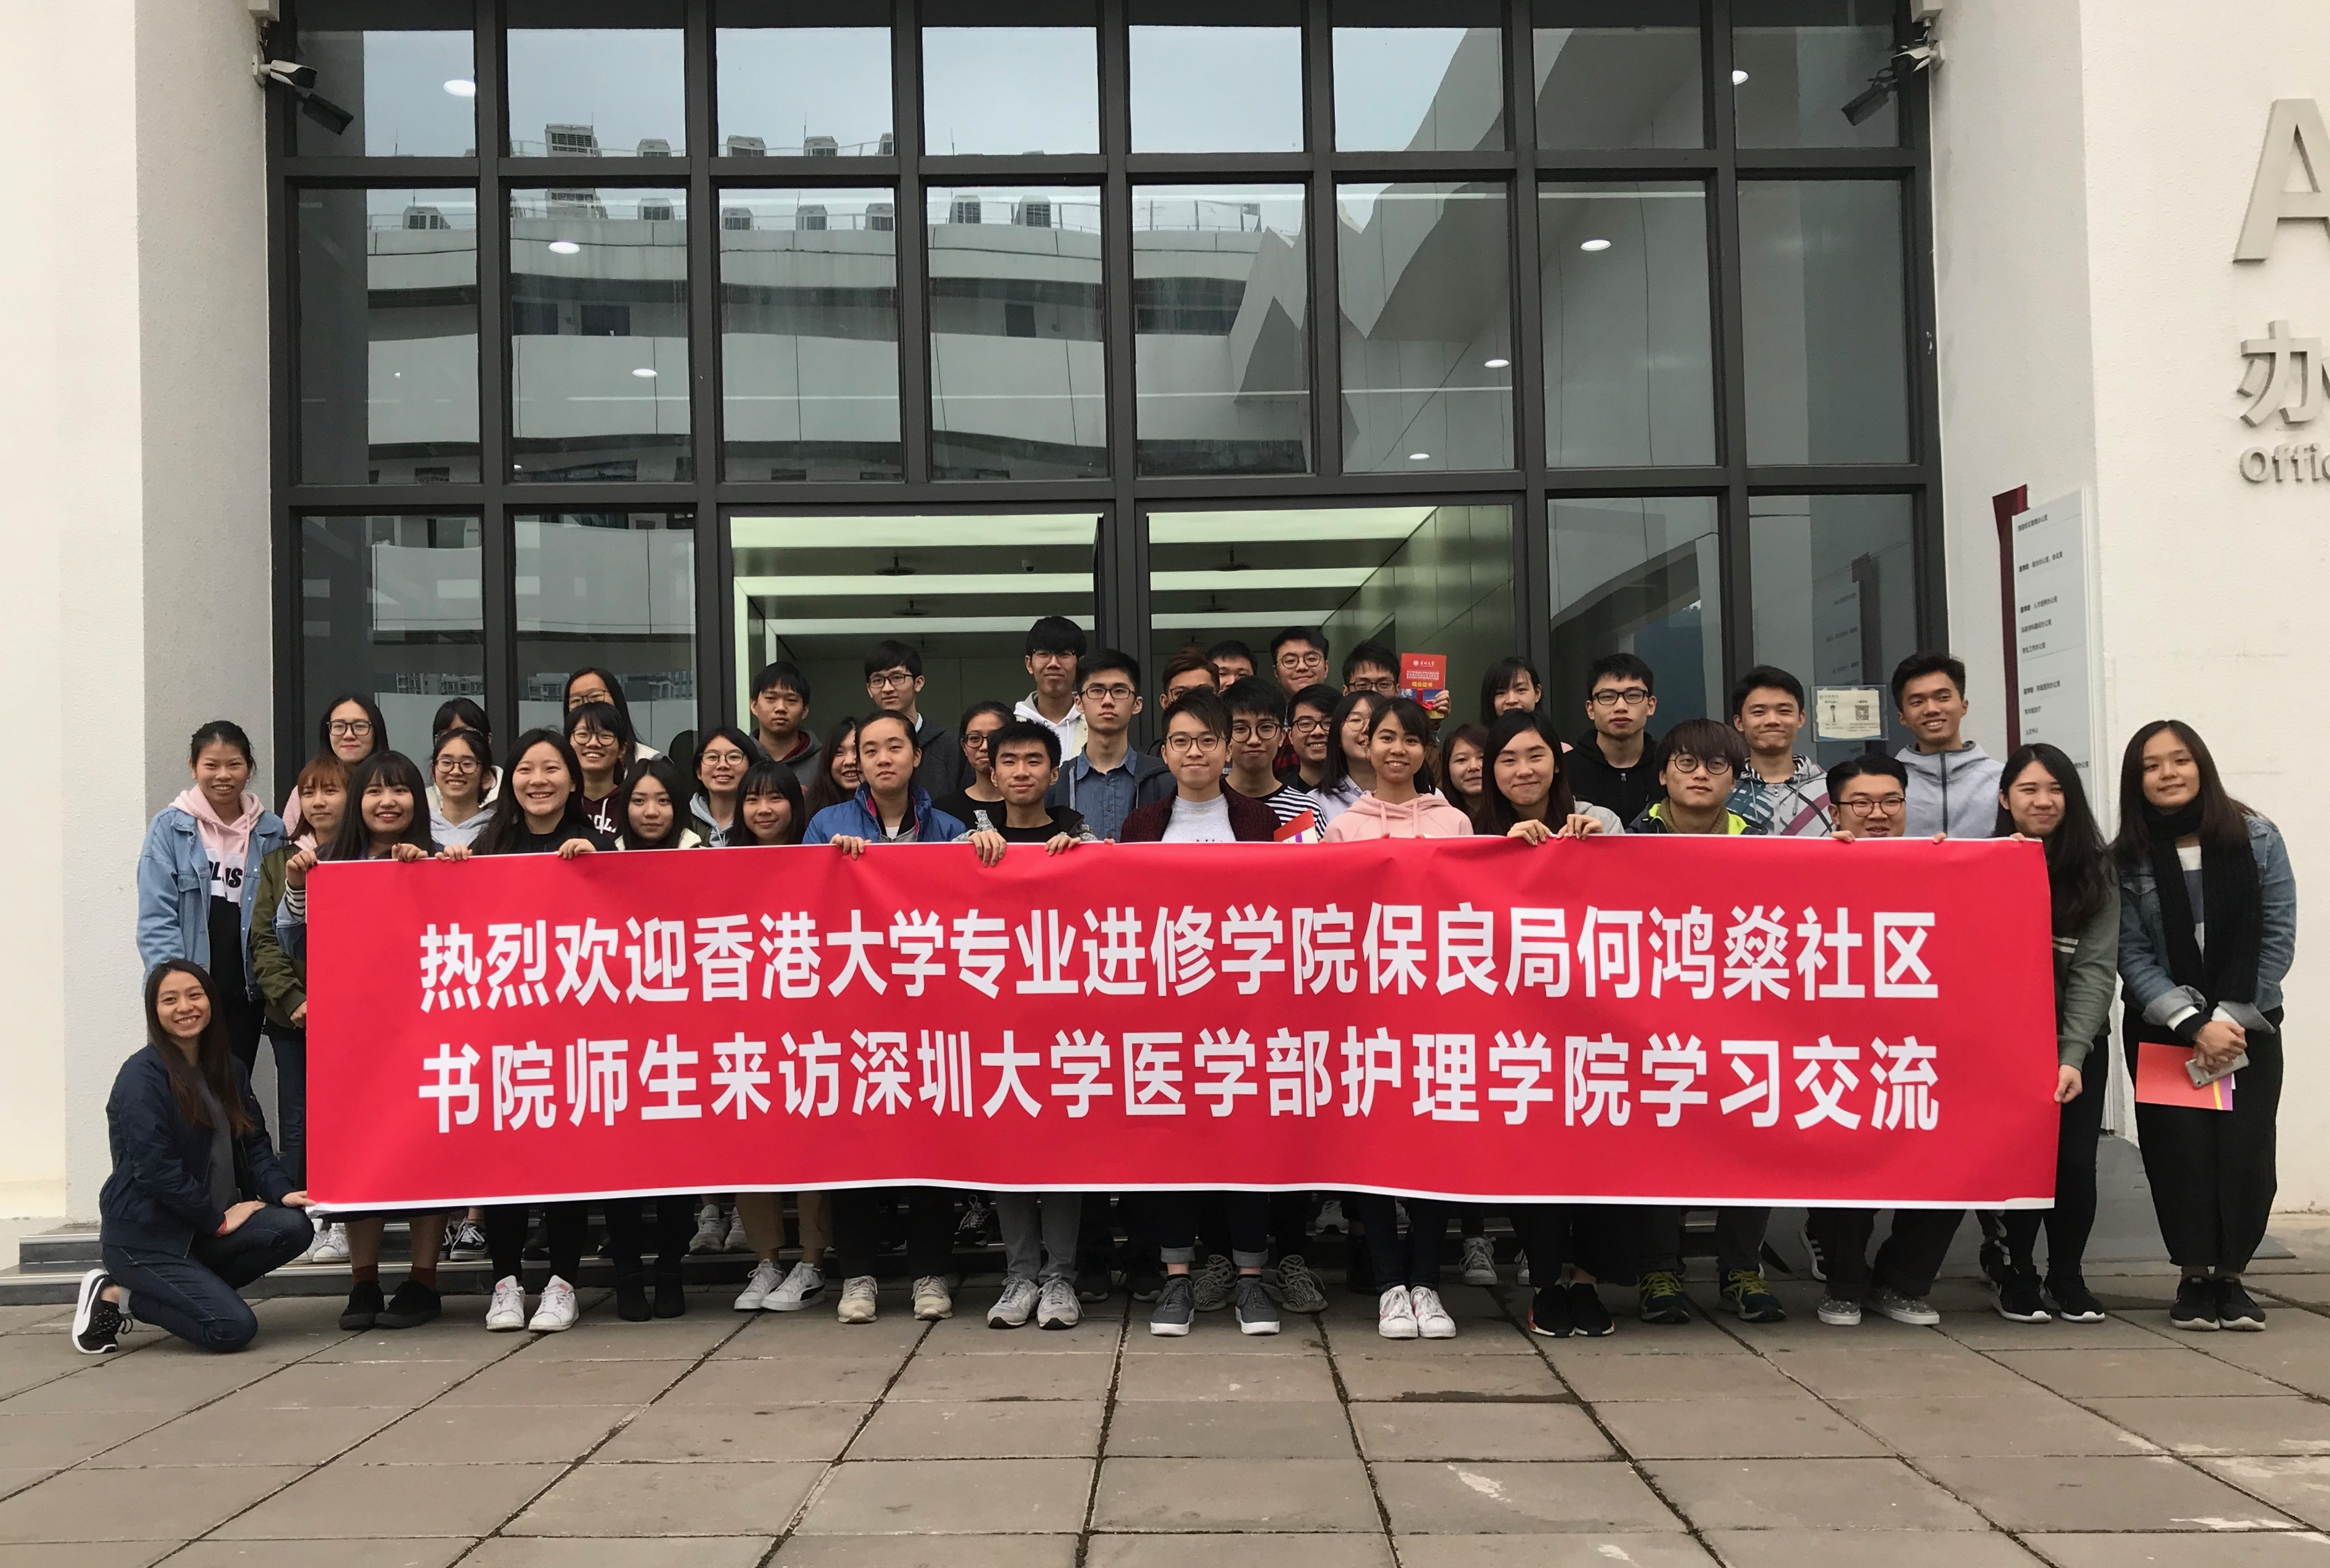 2019 Attachment training programme at the School of Nursing of Shenzhen University - Photo - 17